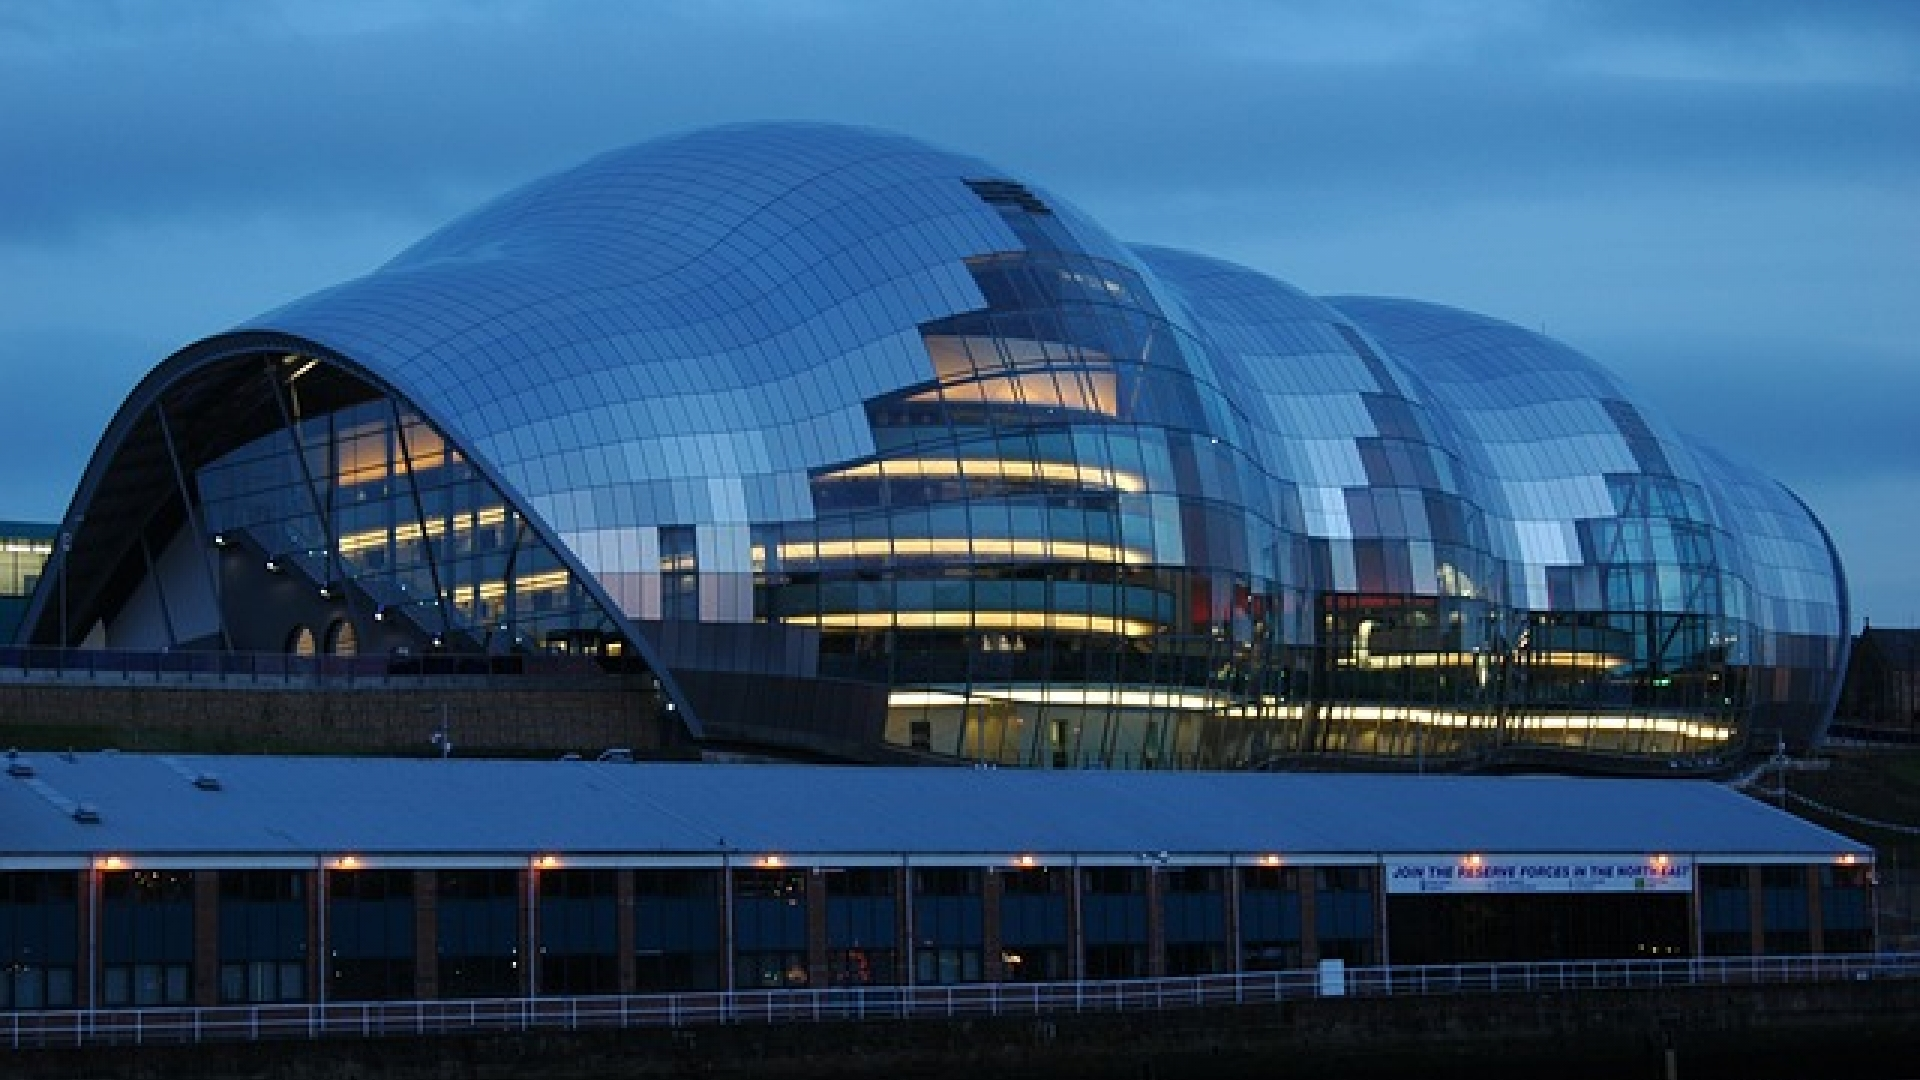 Enjoying one of the wonderful buildings on the quayside. The sage is an innovation of design and function